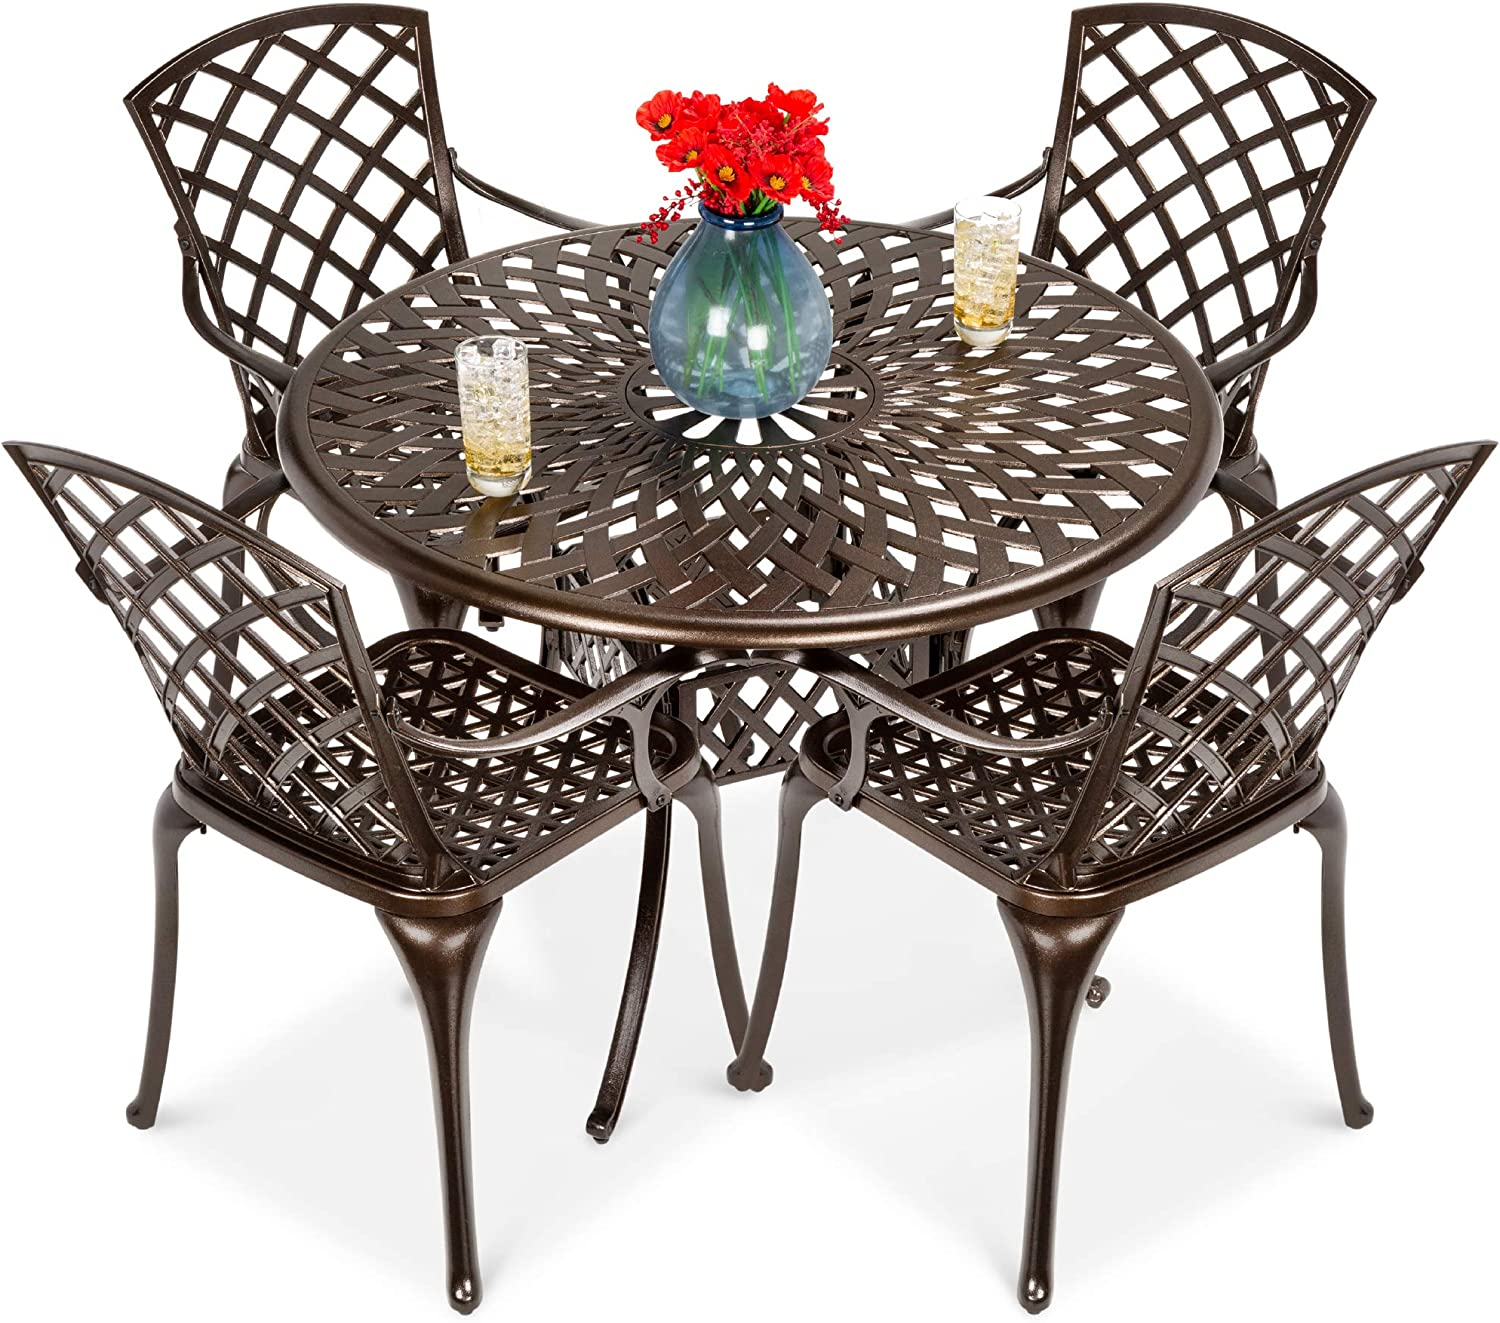 Amazon Com Best Choice Products 5 Piece All Weather Outdoor Cast Aluminum Dining Set For Patio Balcony Lawn Garden Backyard W 4 Chairs Umbrella Hole Lattice Weave Design Brown Garden Outdoor